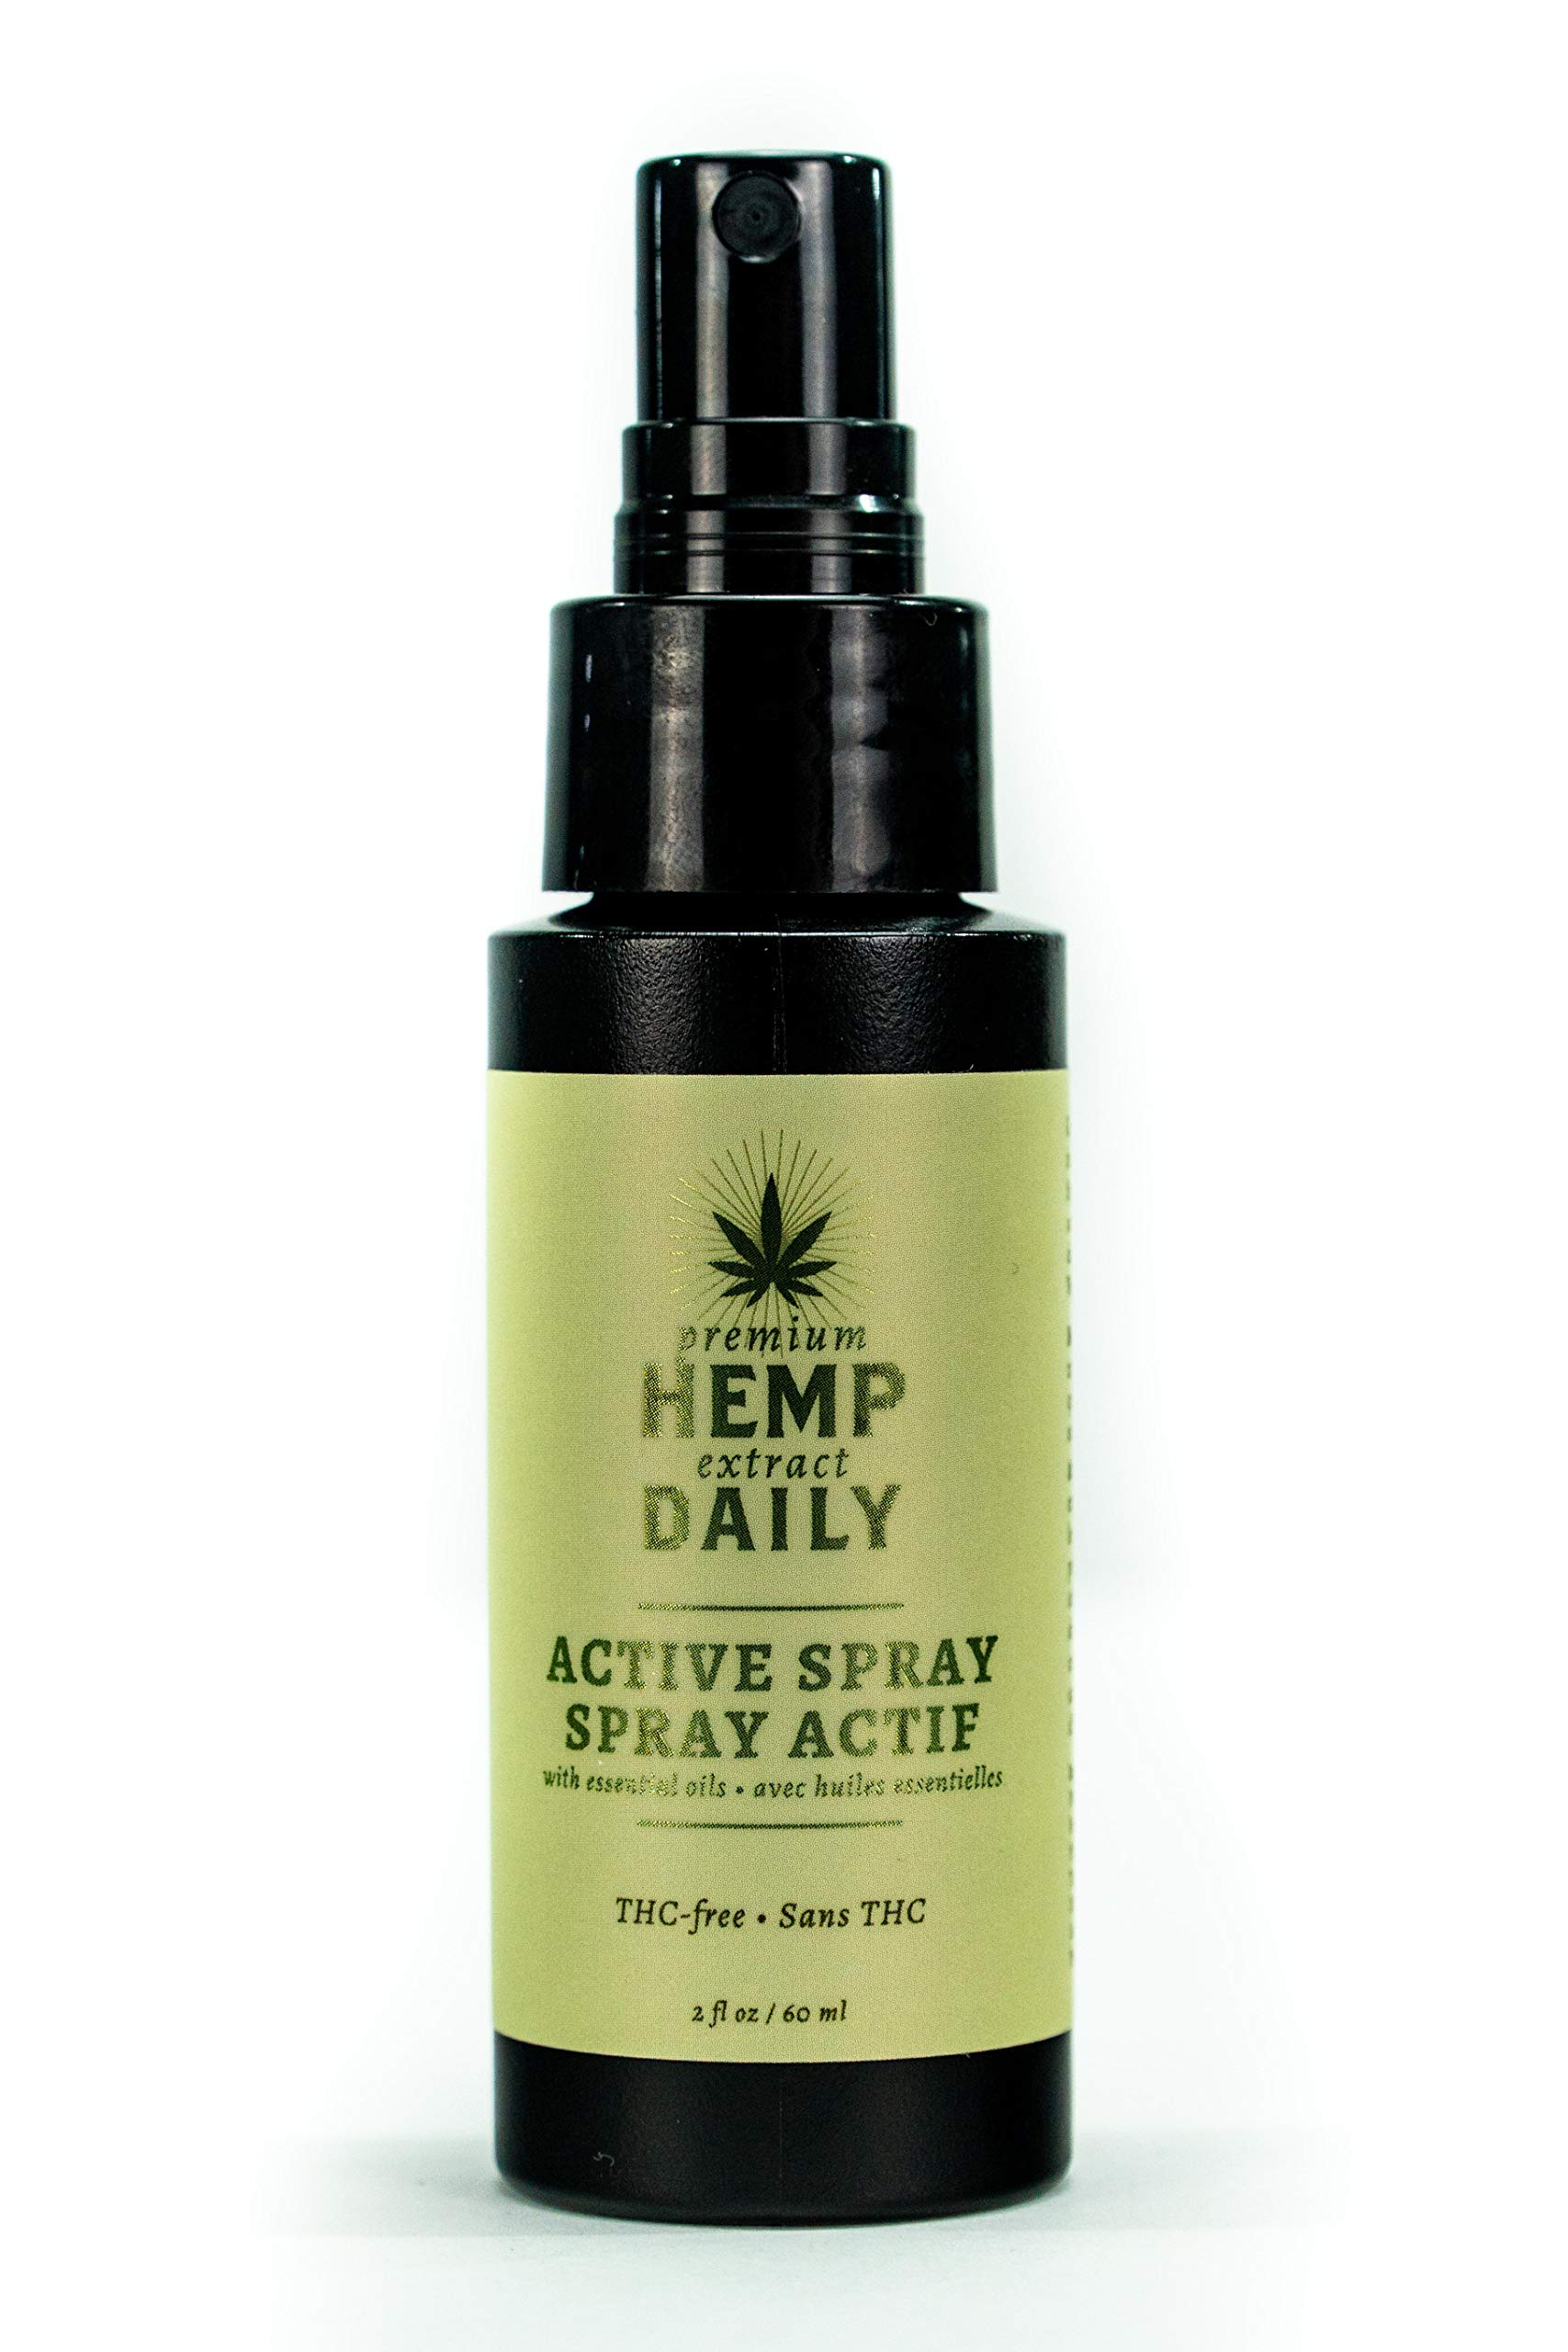 Hemp Daily Active Spray | Hemp Spray with Essential Oils | Vegan, Organic Ingredients, Calming, Use for Muscle Pain and Anxiety Relief | 2 Fluid Ounces by Hemp Daily